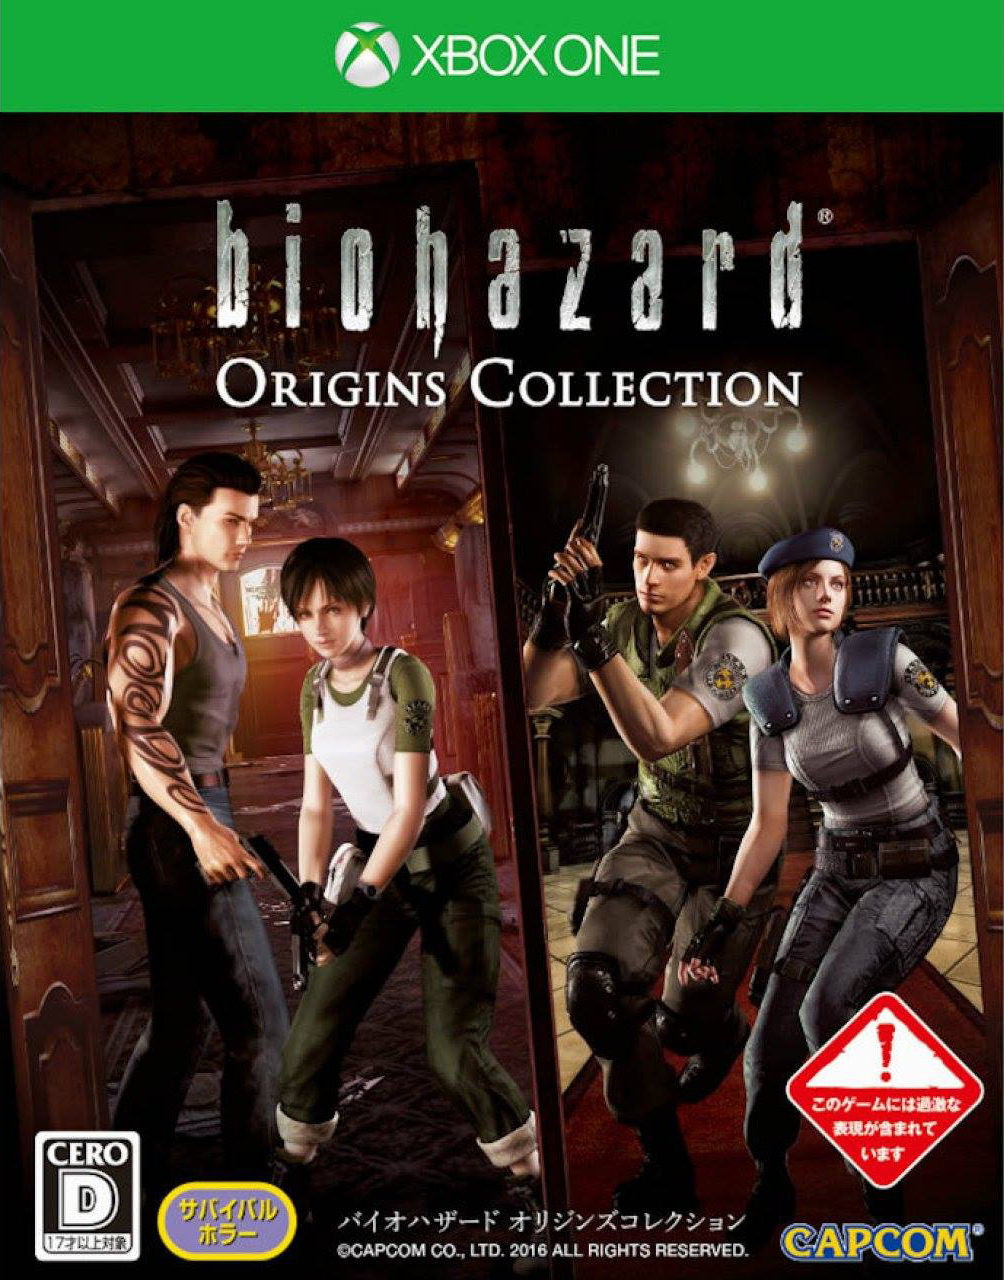 Fichier:Biohazard origins collection xboxone.png